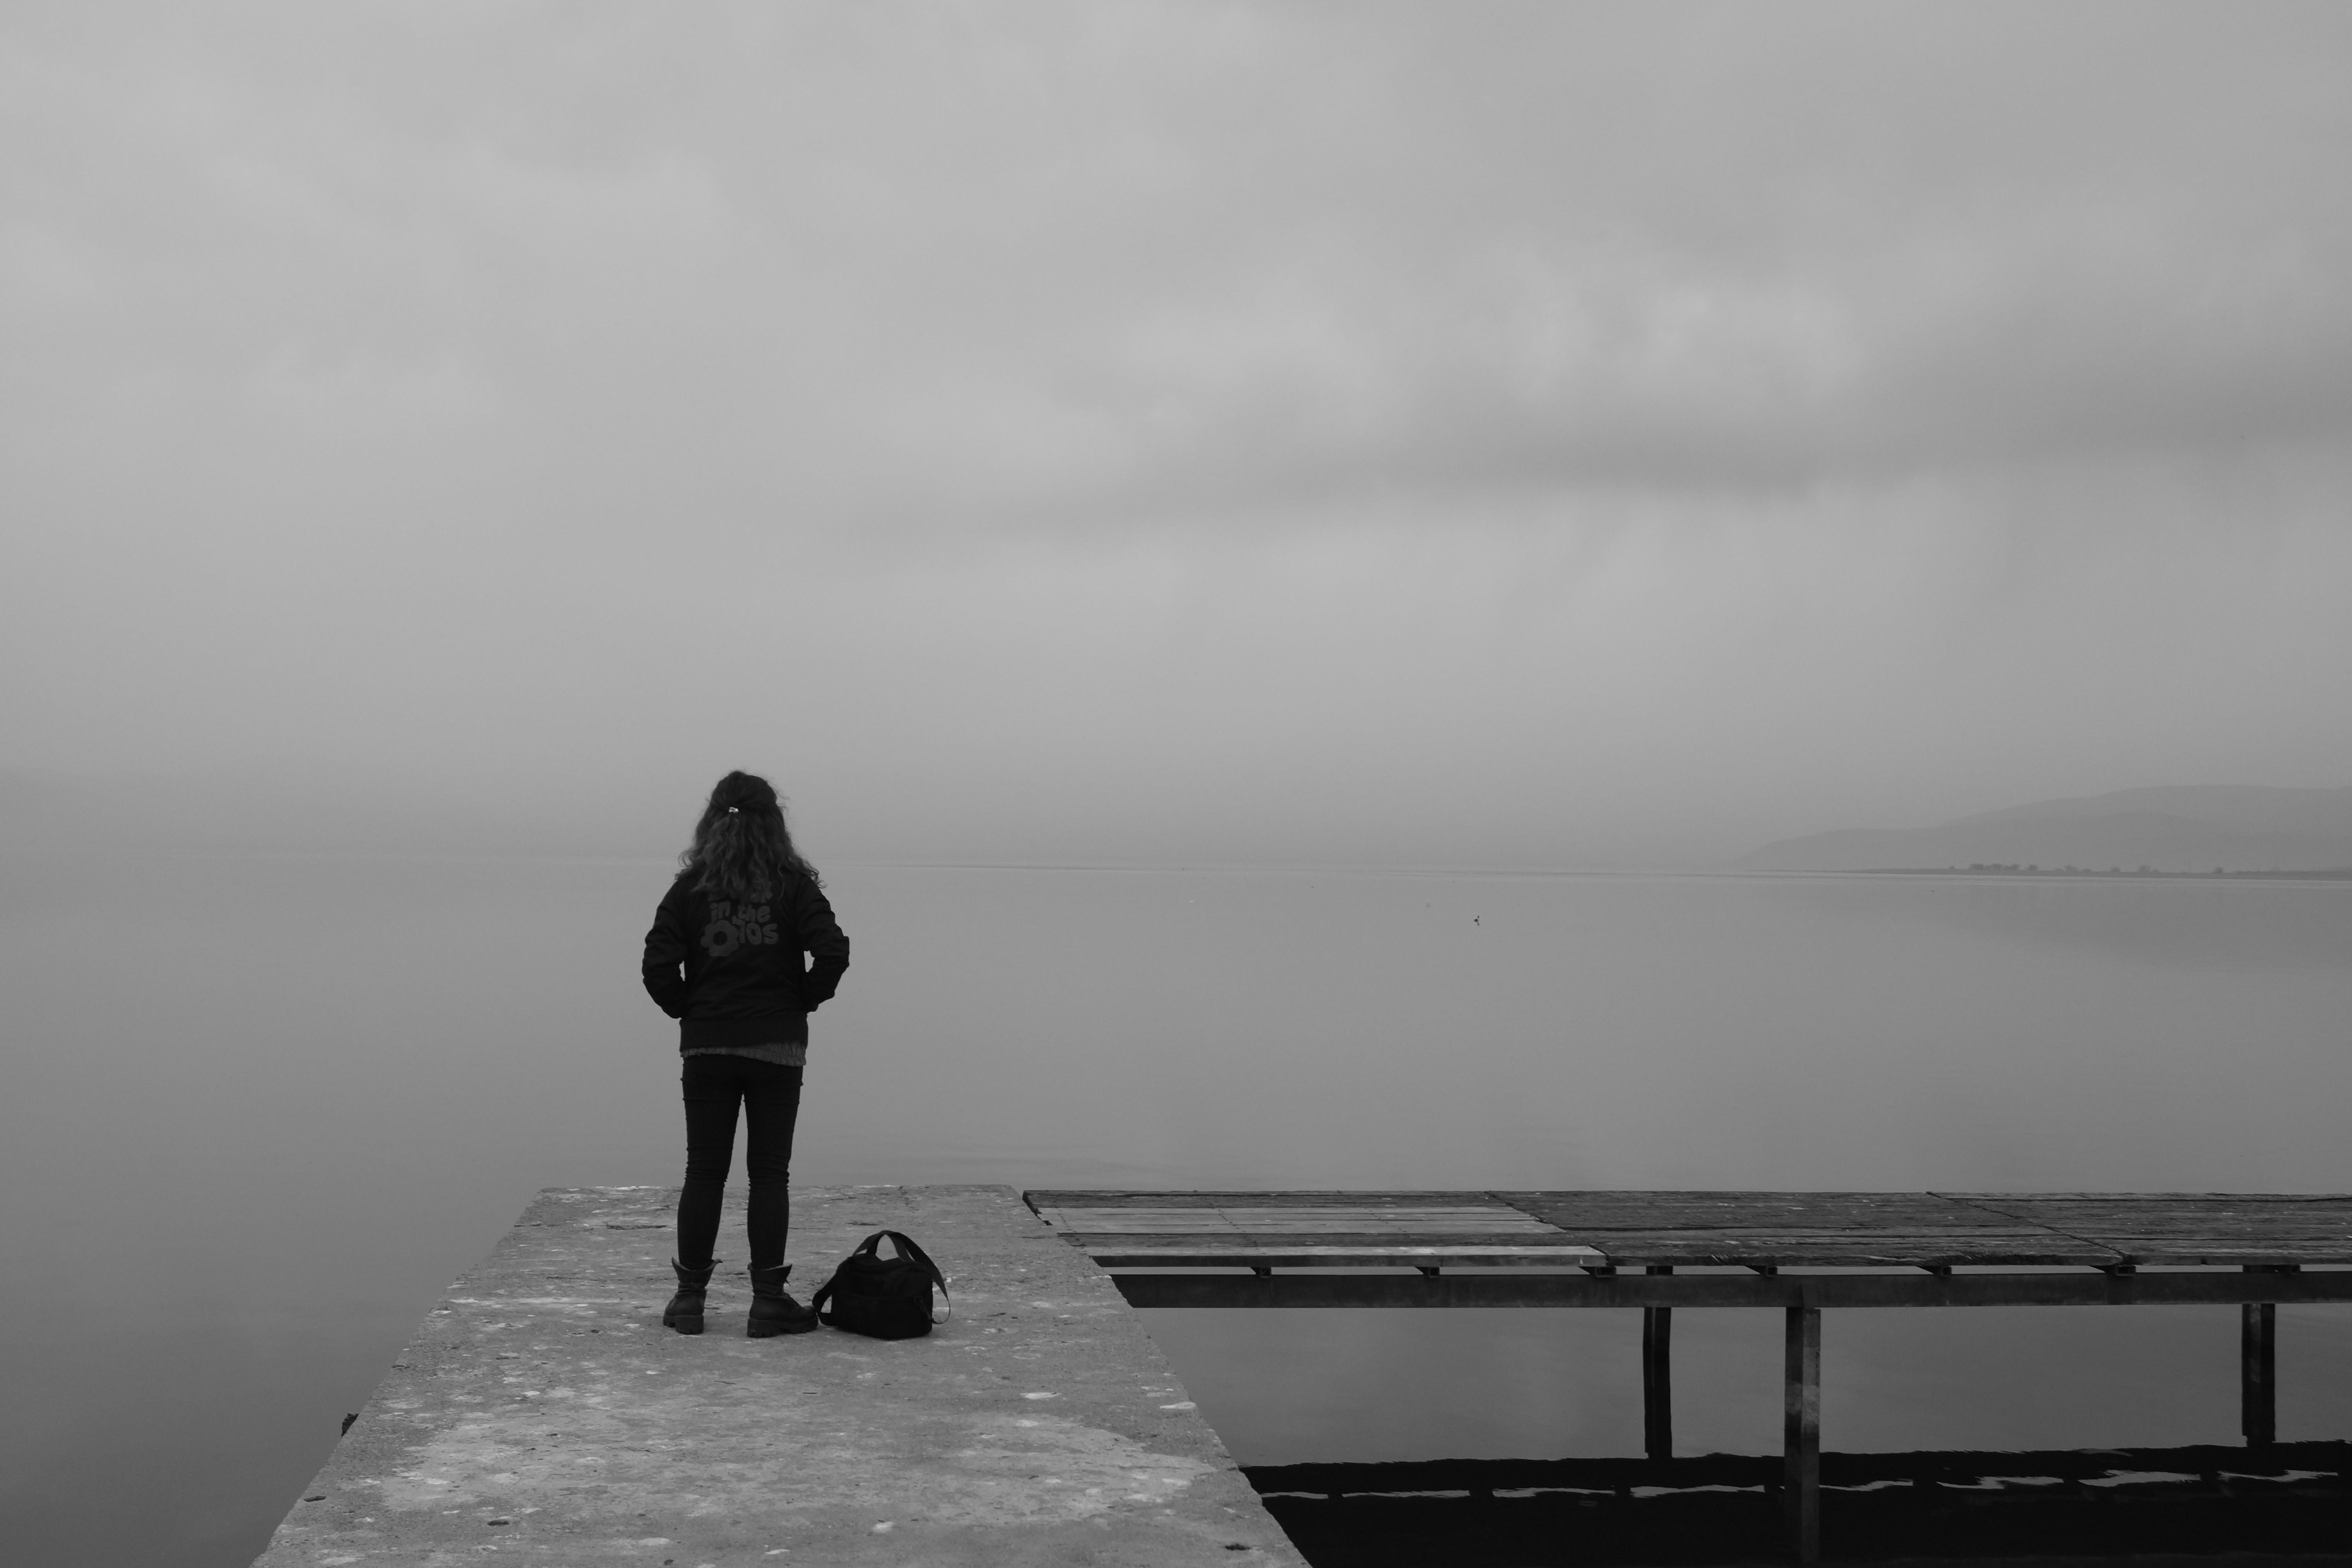 Free stock photo of jetty, sea, black-and-white, person